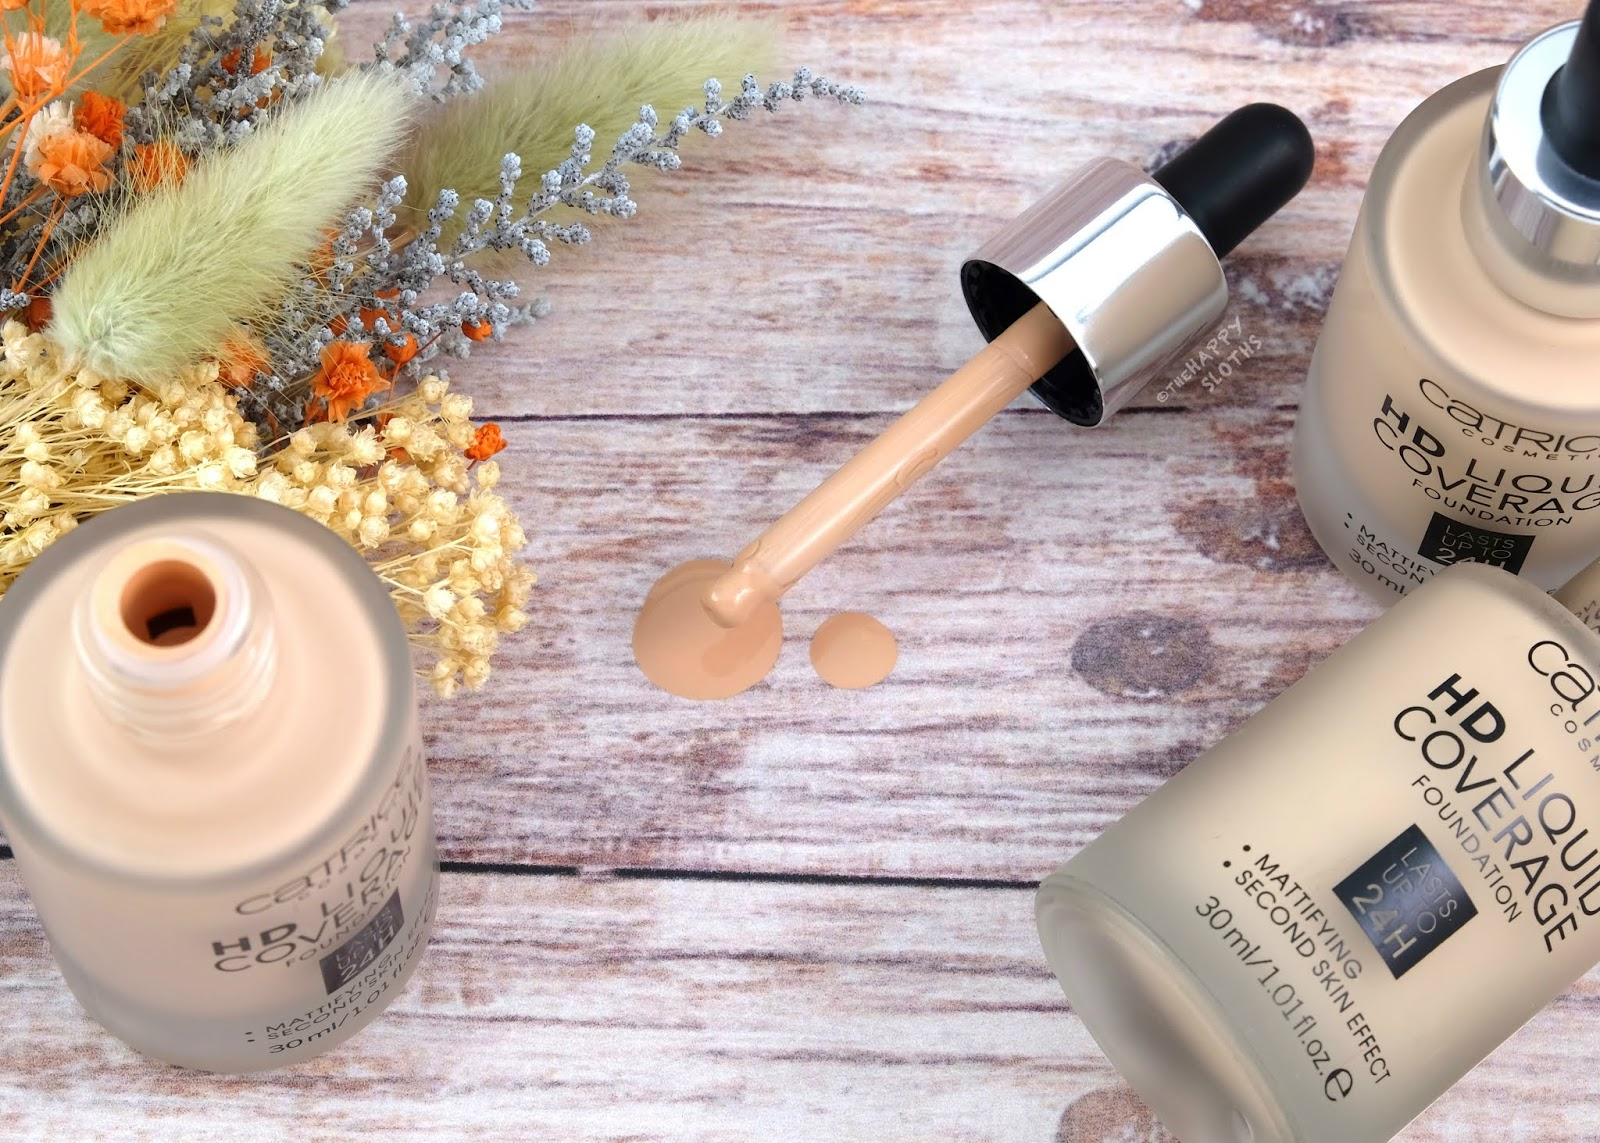 Catrice | HD Liquid Coverage Foundation: Review and Swatches